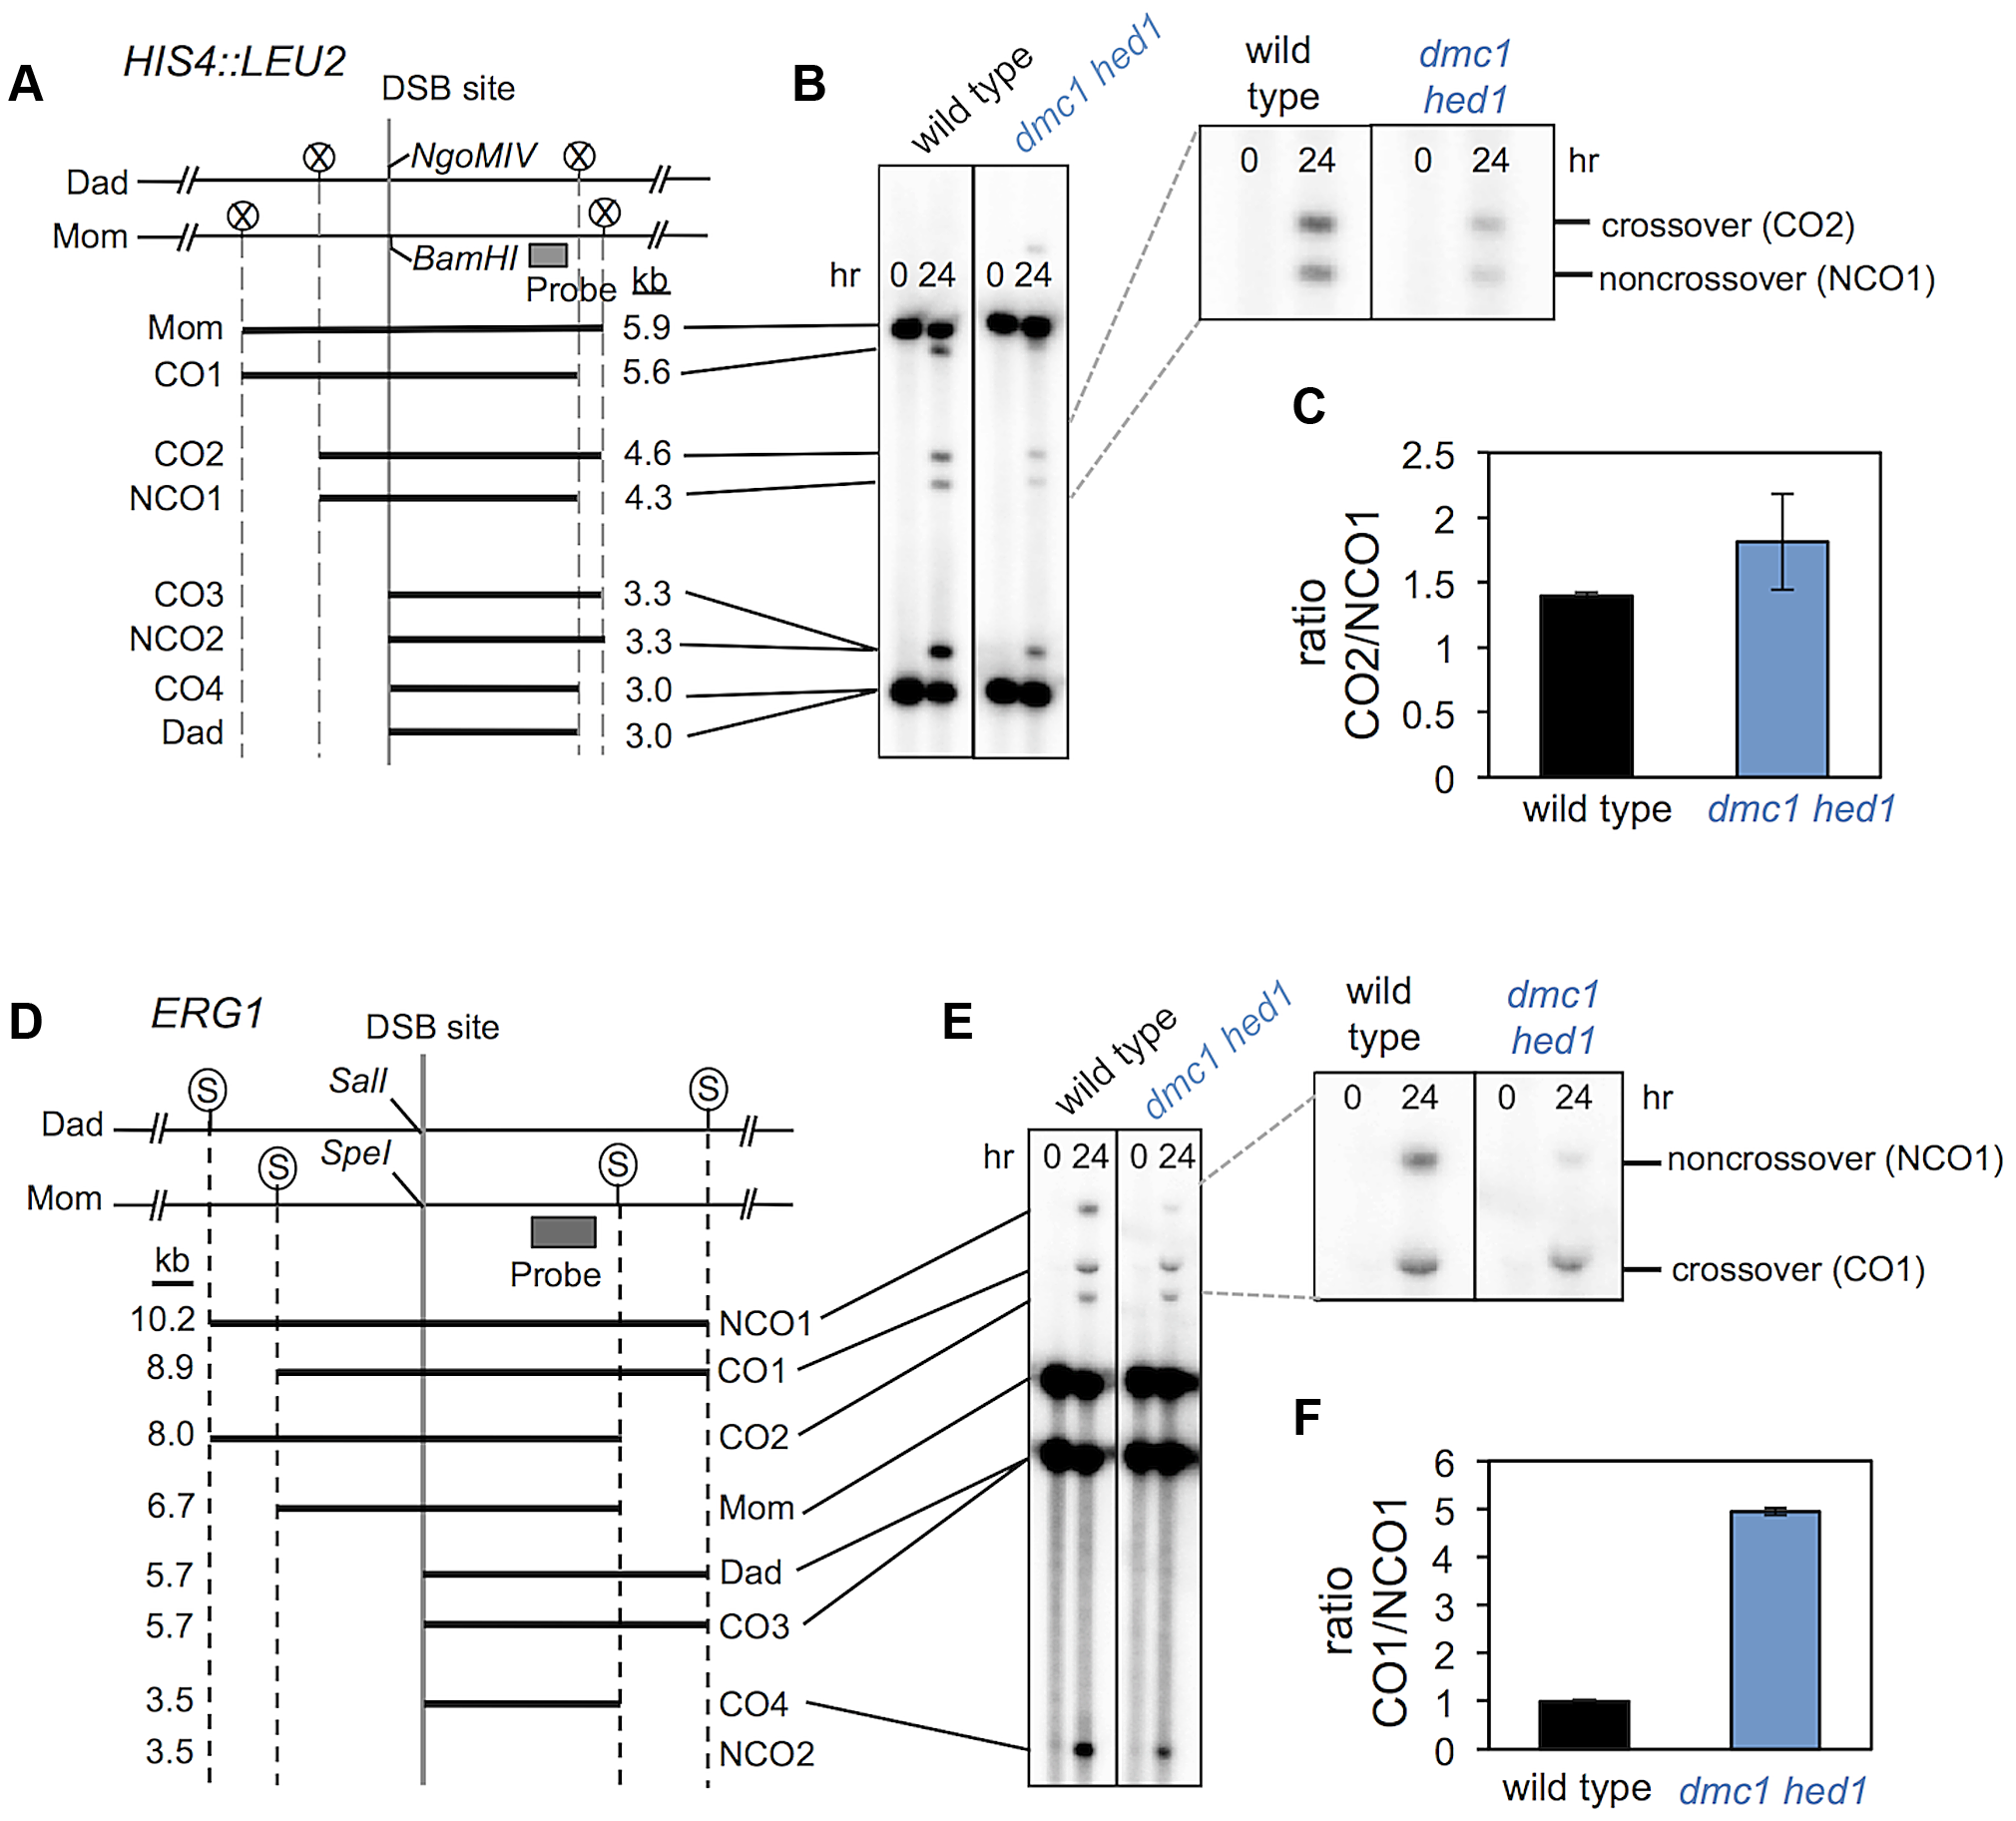 <i>dmc1 hed1</i> strains have elevated crossover/non-crossover ratios at two recombination hotspots.